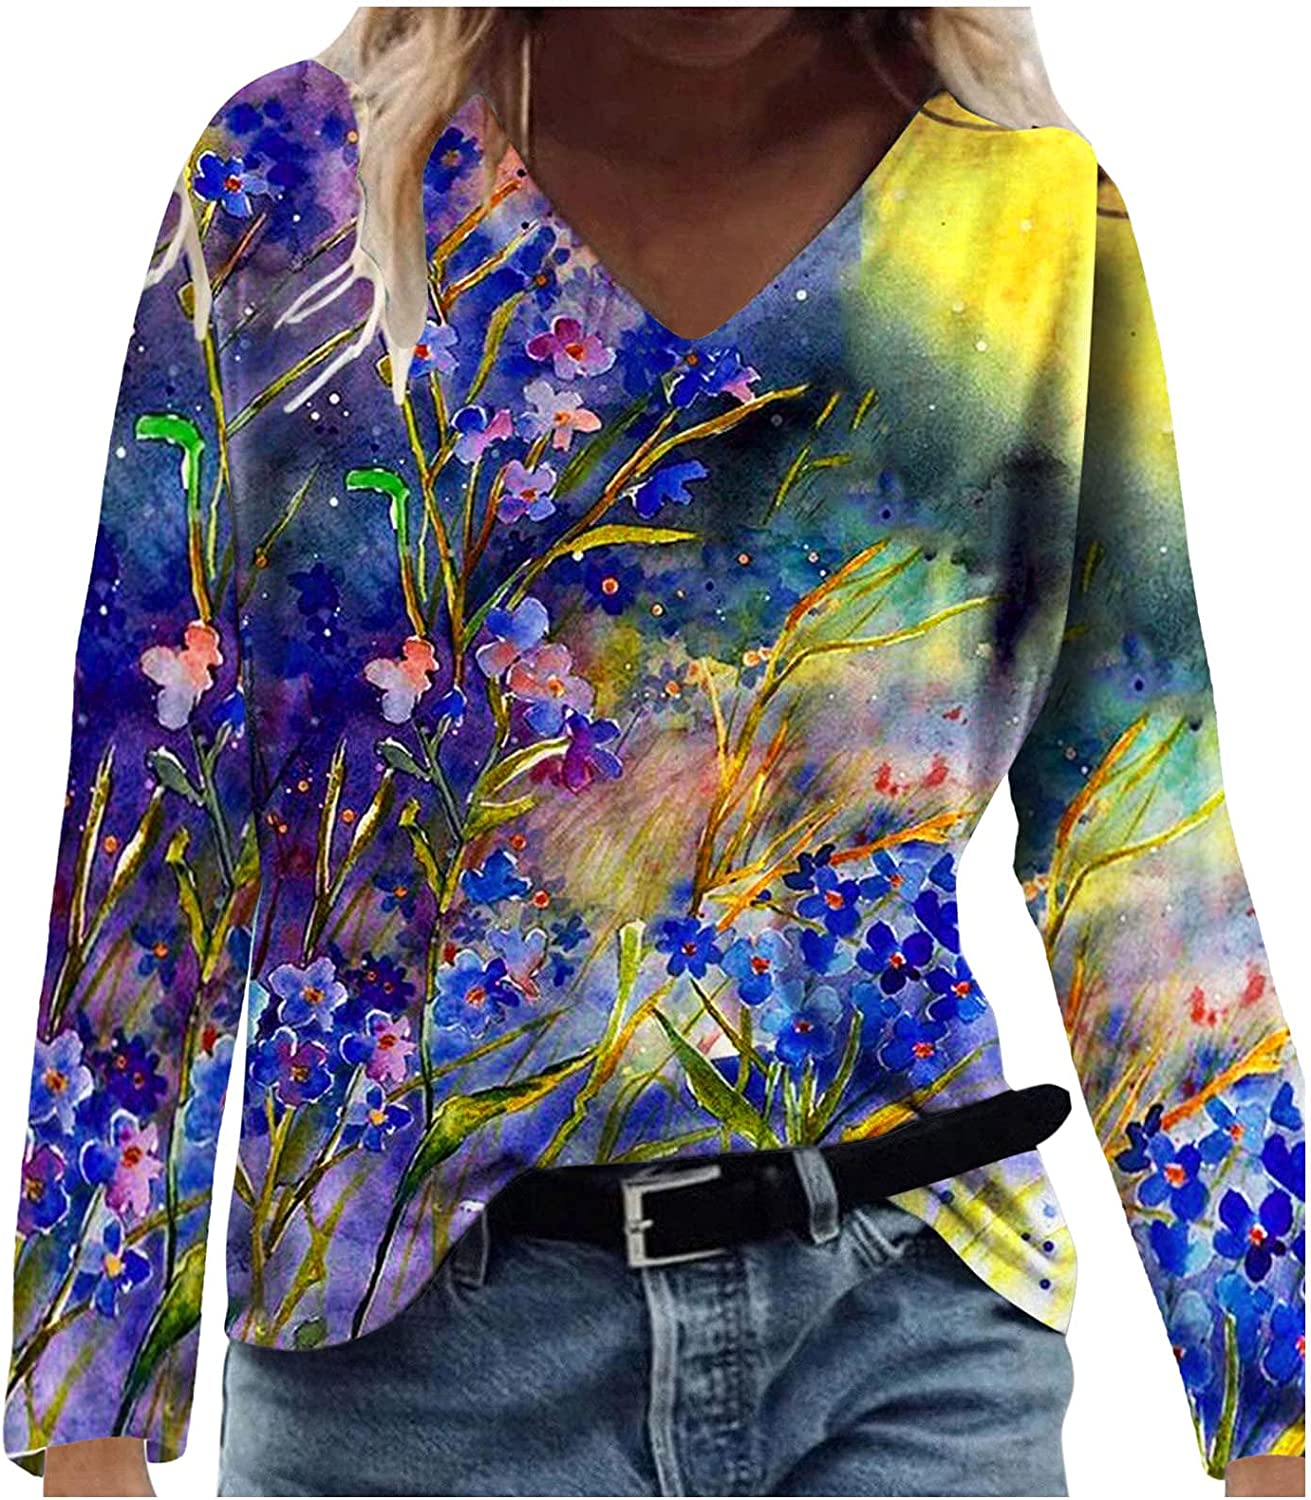 ONHUON Long Sleeve Blouse for Women Casual,Women Fashion V Neck Floral Sweatshirts Pullovers Tops Tunic Tees Shirts